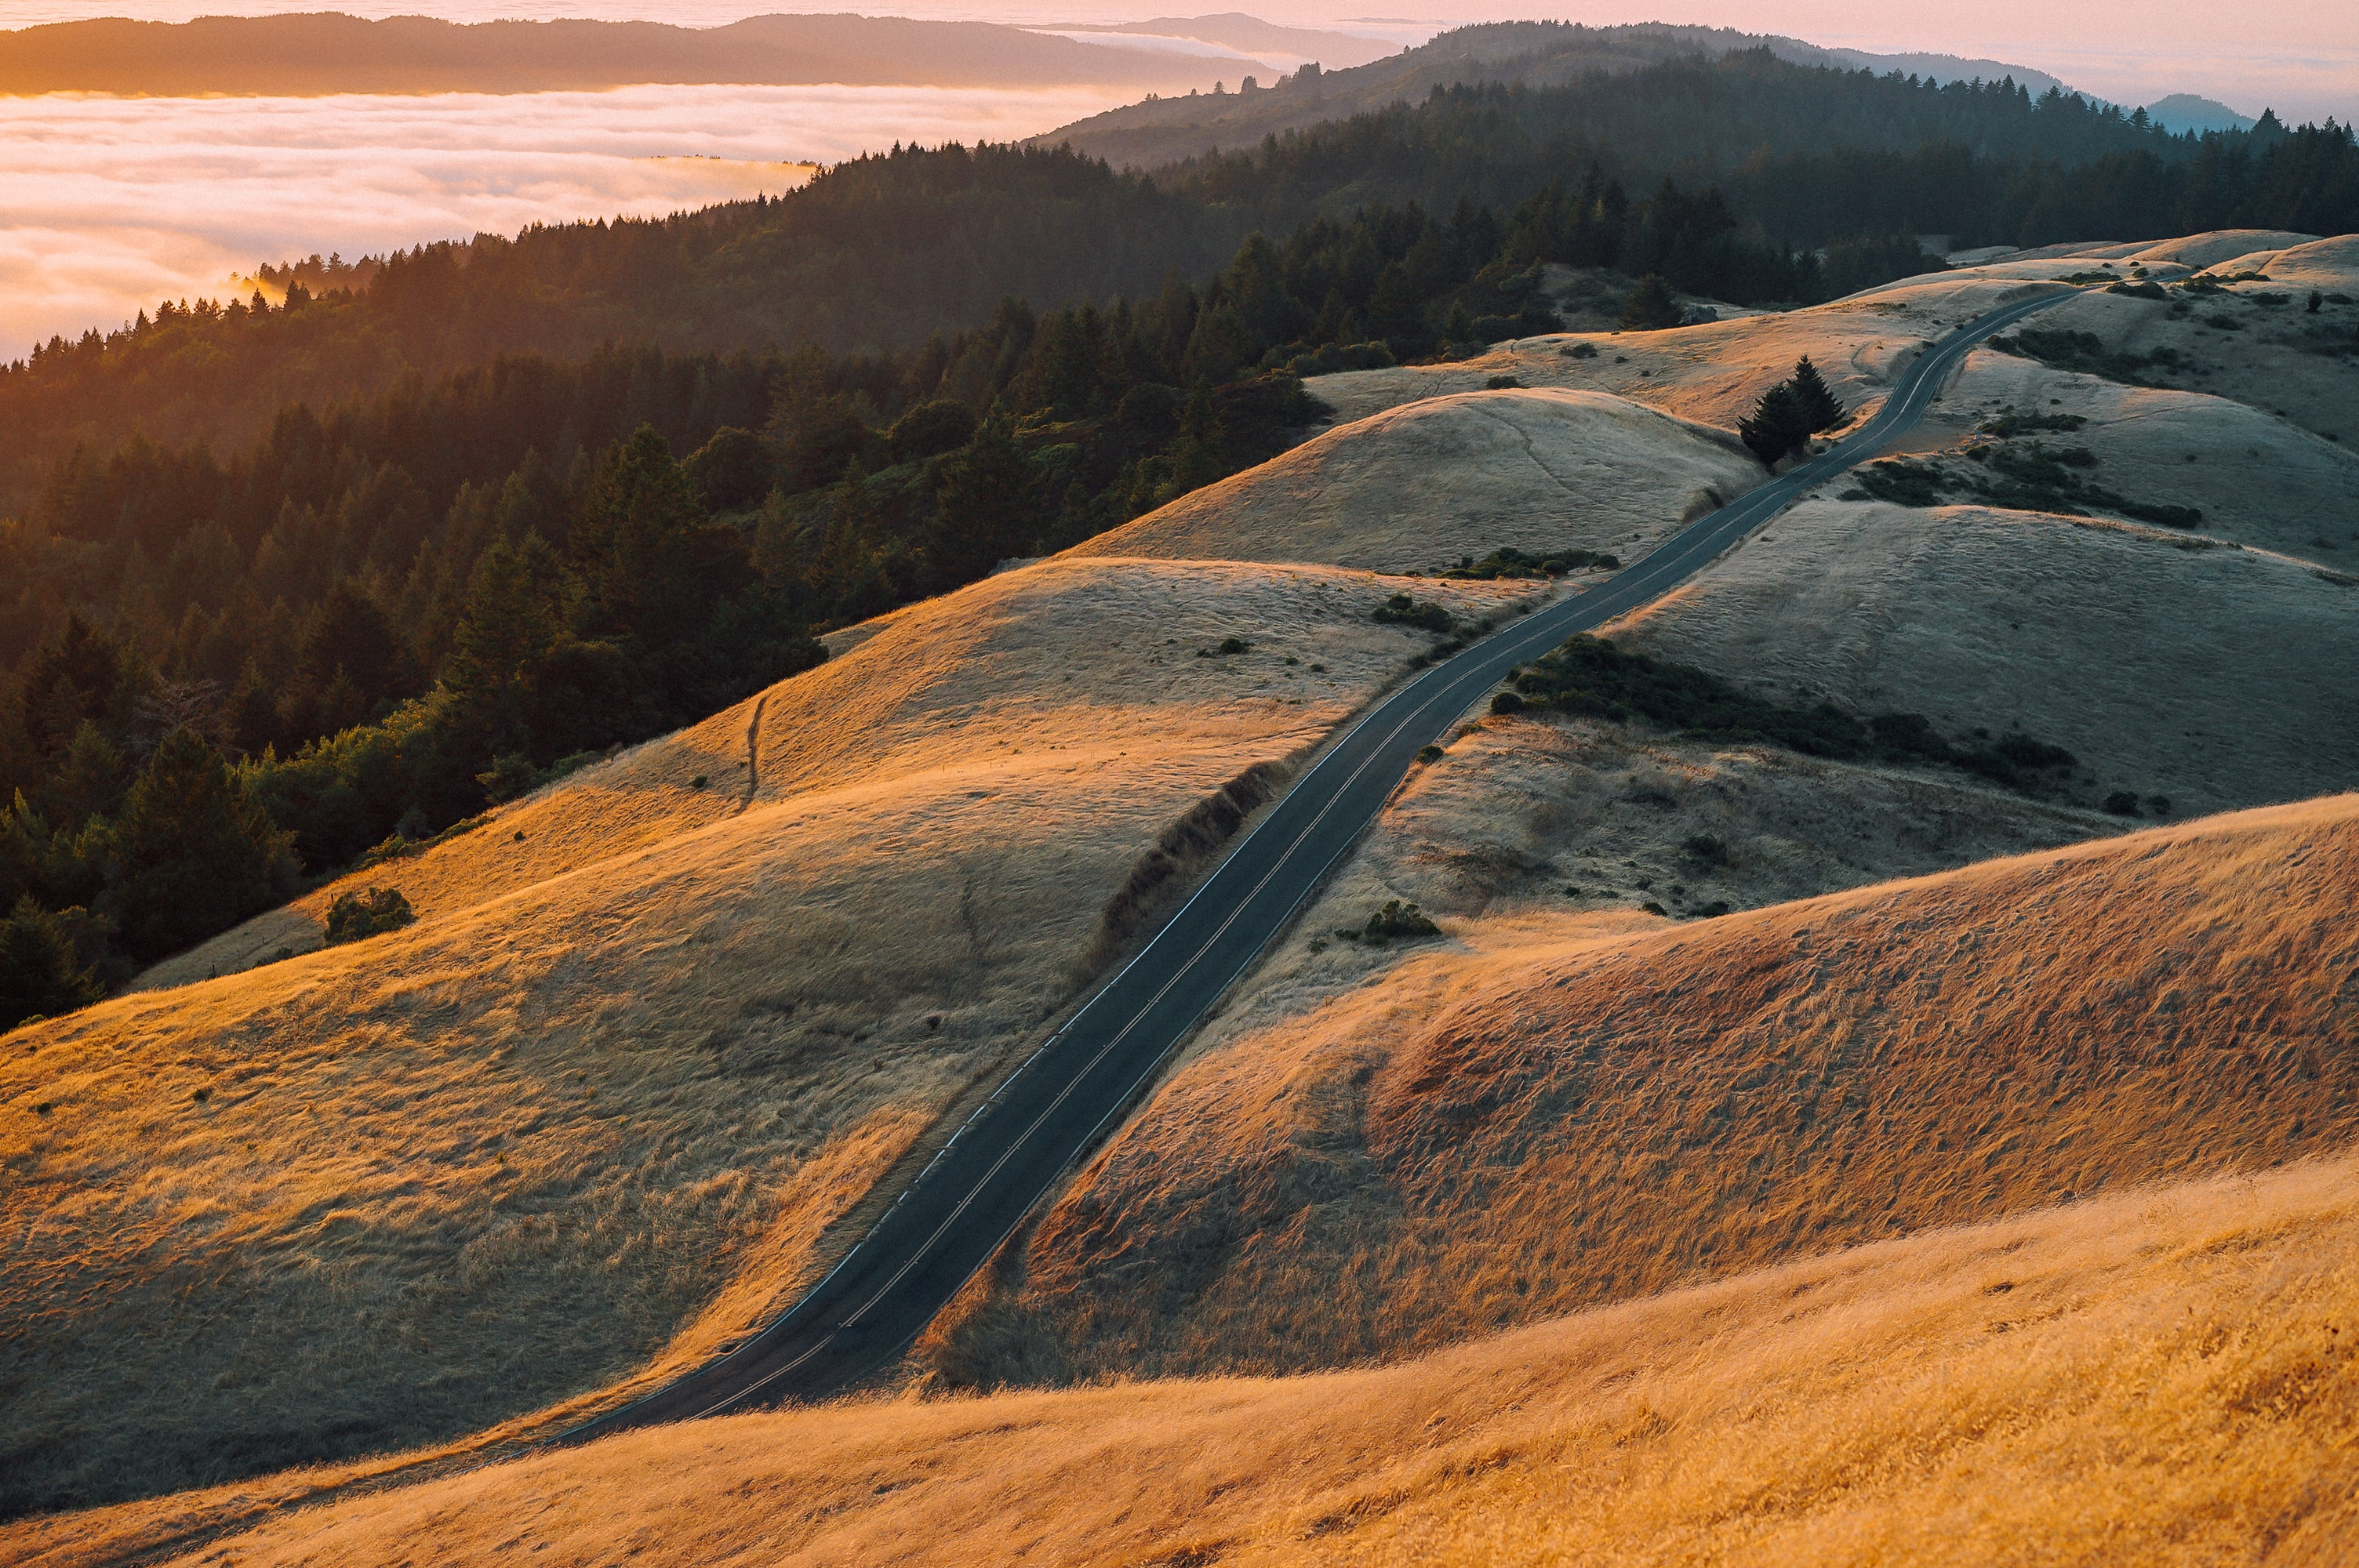 An empty country road stretching across grassy hills during sunset, forests and foggy valleys in the distance